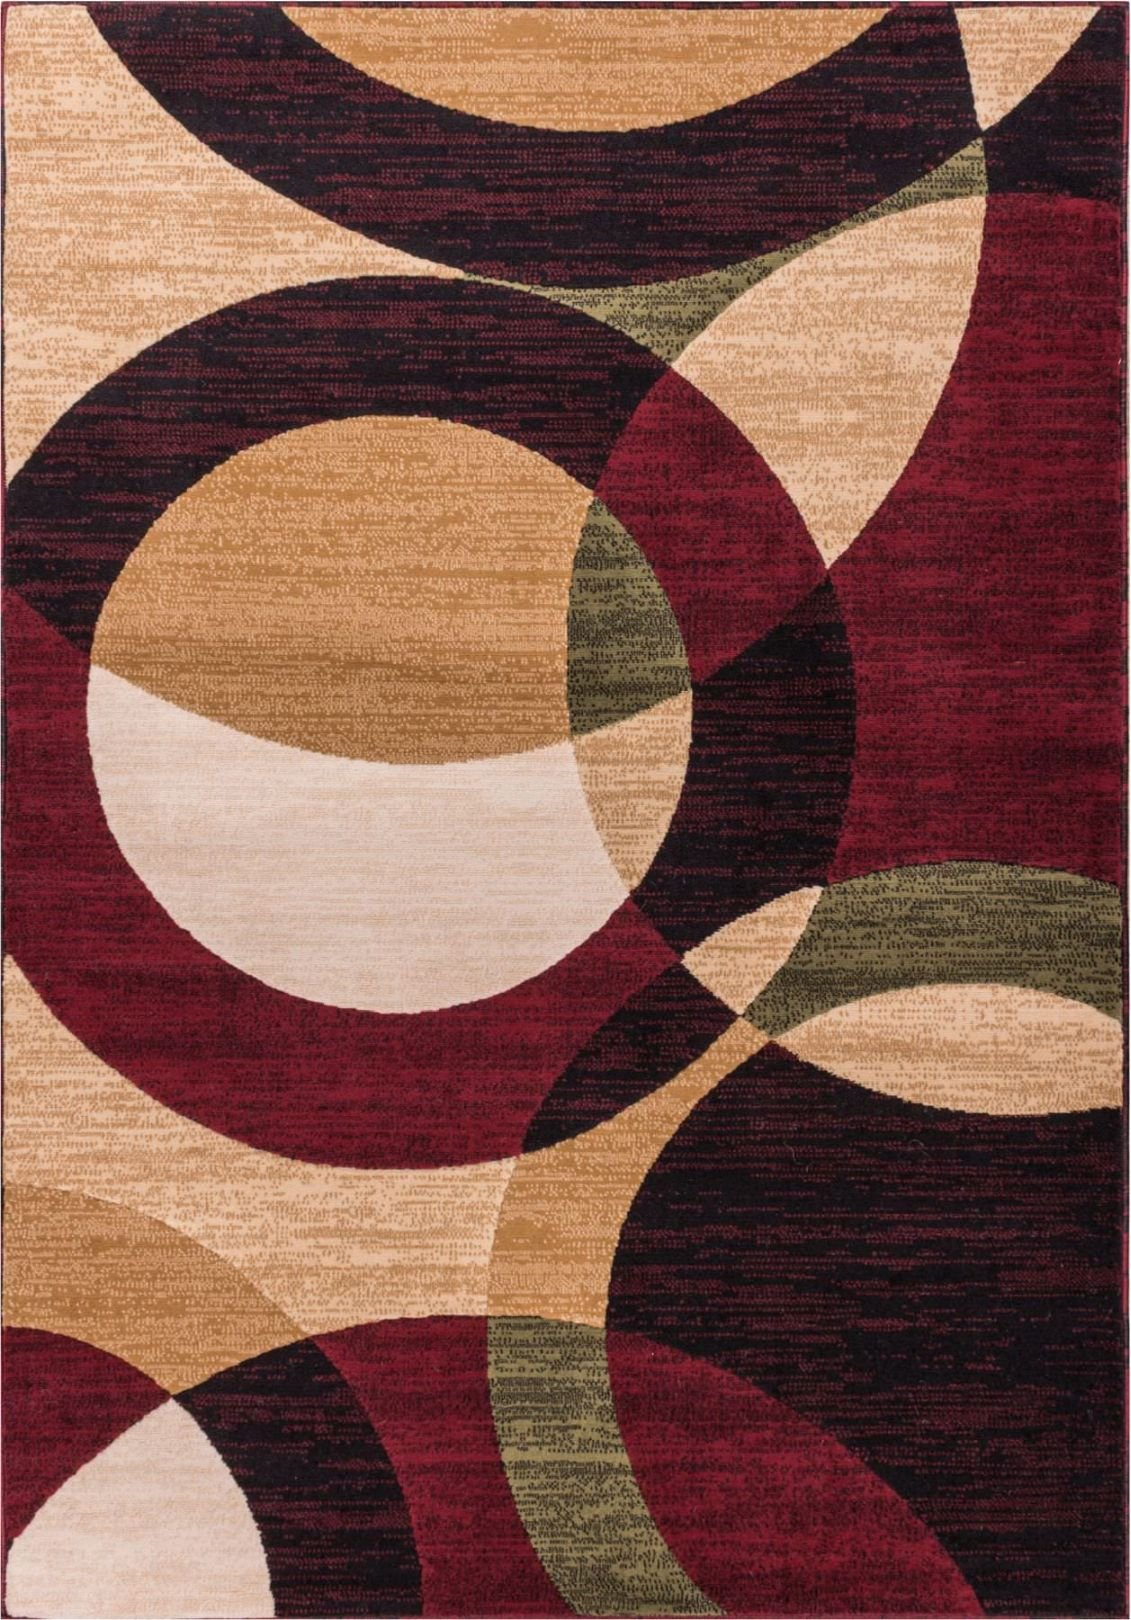 Well Woven Dulcet Bingo Red Modern Geometric Area Rug 3'3'' X 5' by Well Woven